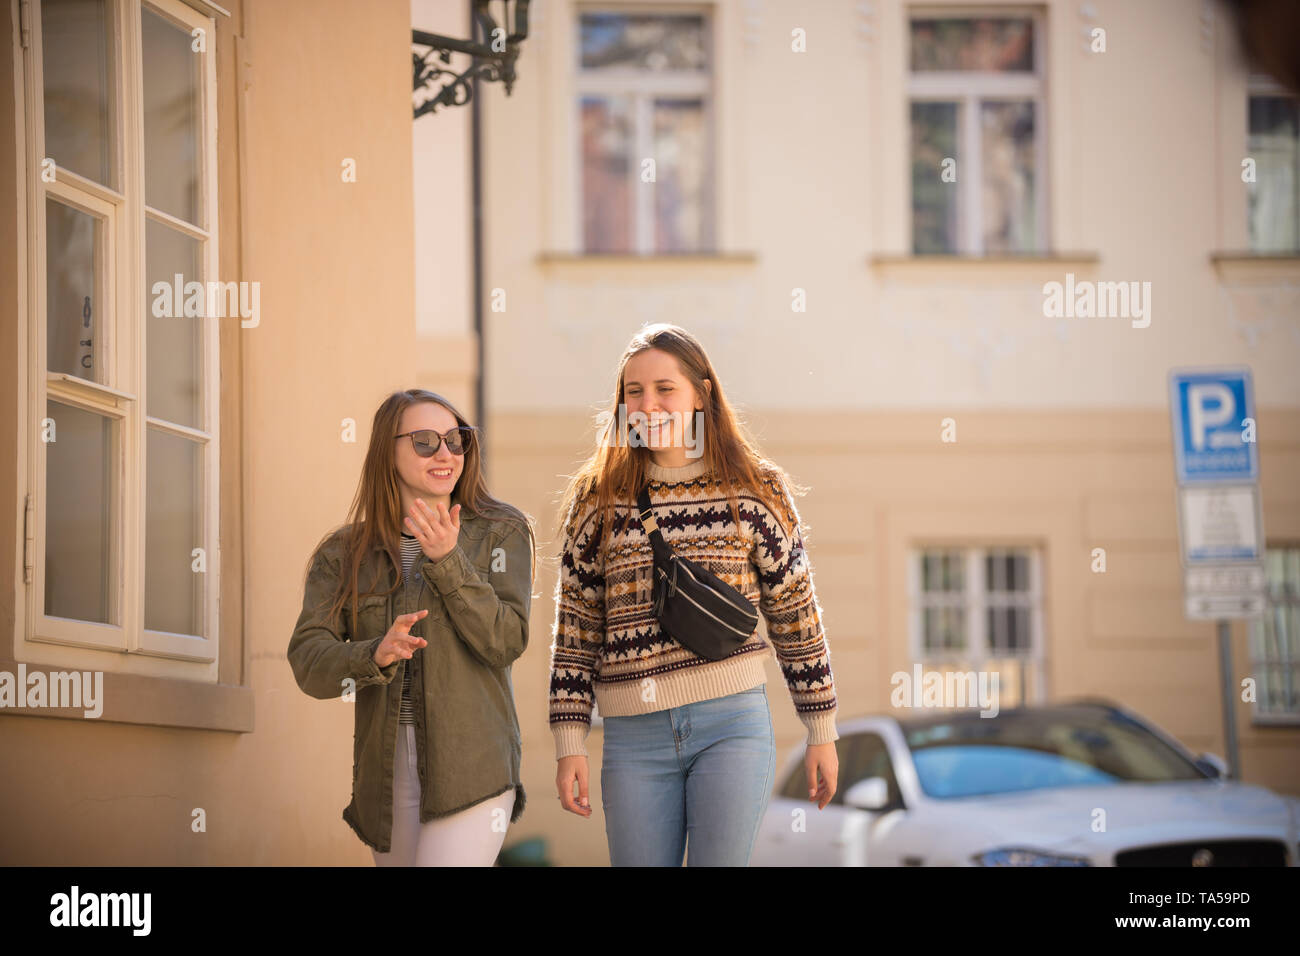 Two young smiling women walking on the streets. Mid shot Stock Photo